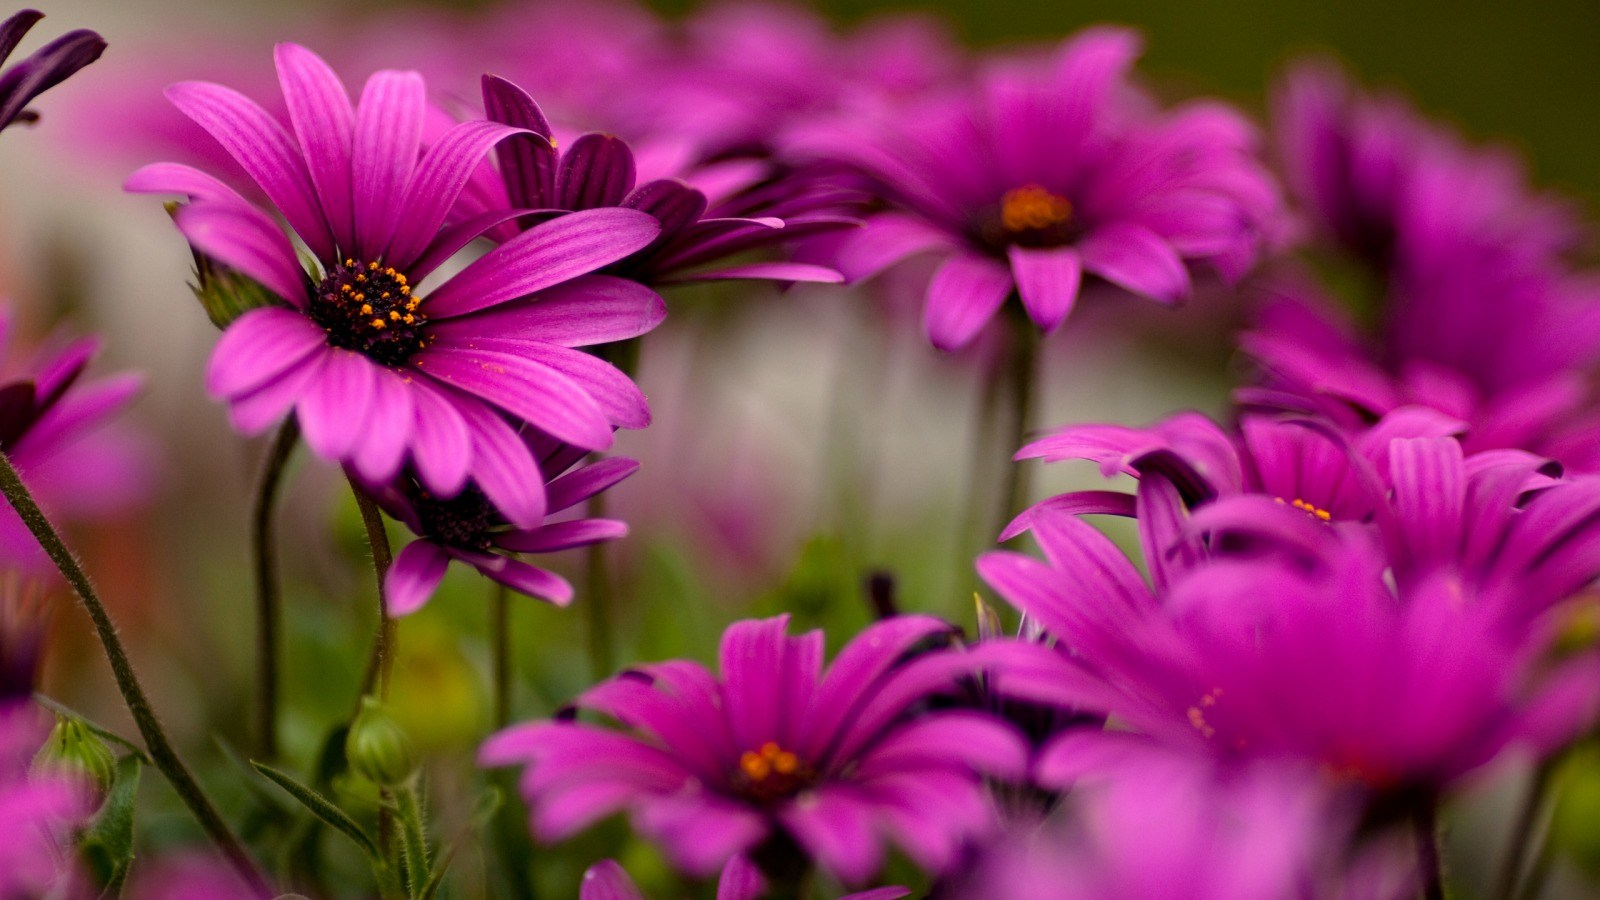 World's Top 100 Beautiful Flowers Images Wallpaper Photos Free